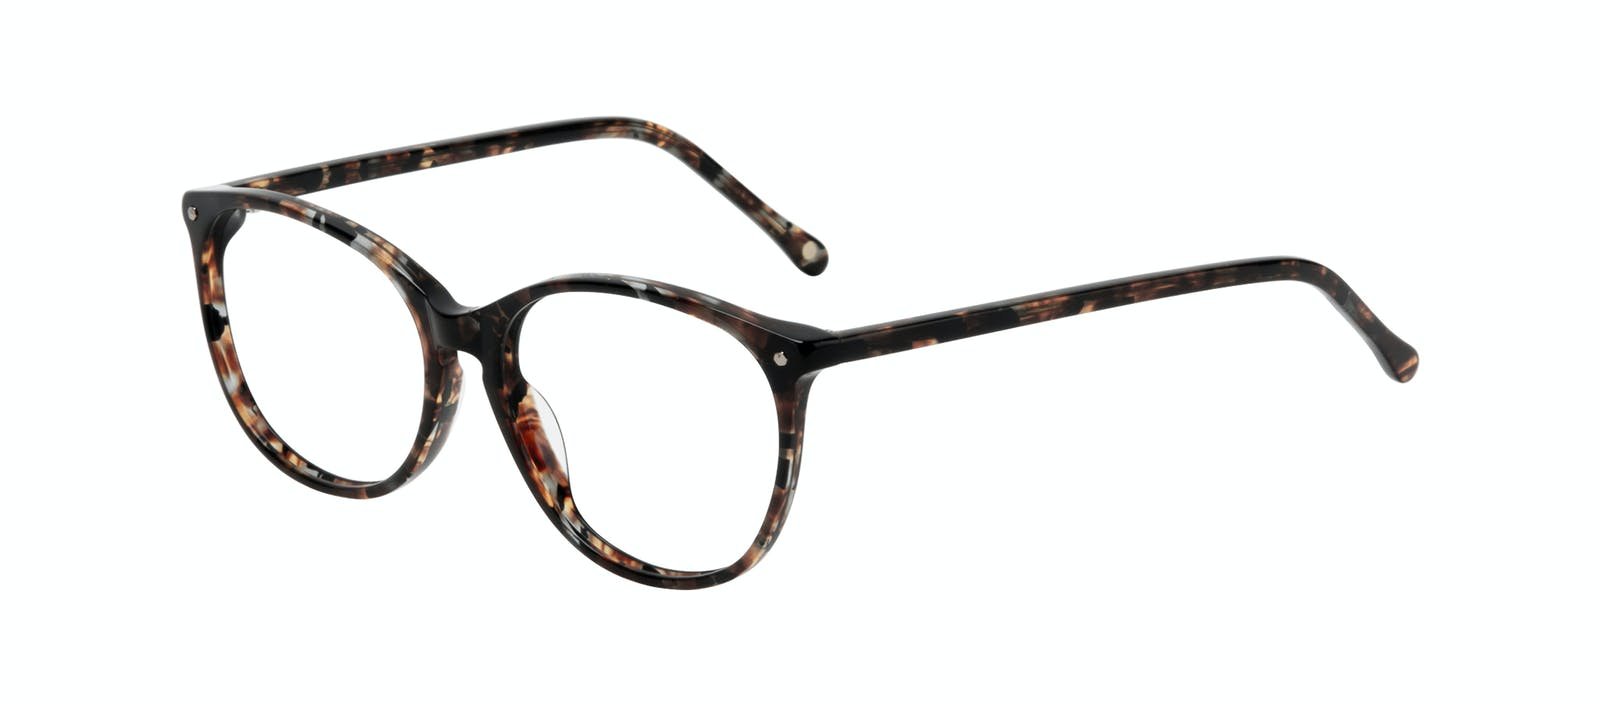 debe3adf40c Affordable Fashion Glasses Rectangle Square Round Eyeglasses Women Nadine  Sepia Tilt